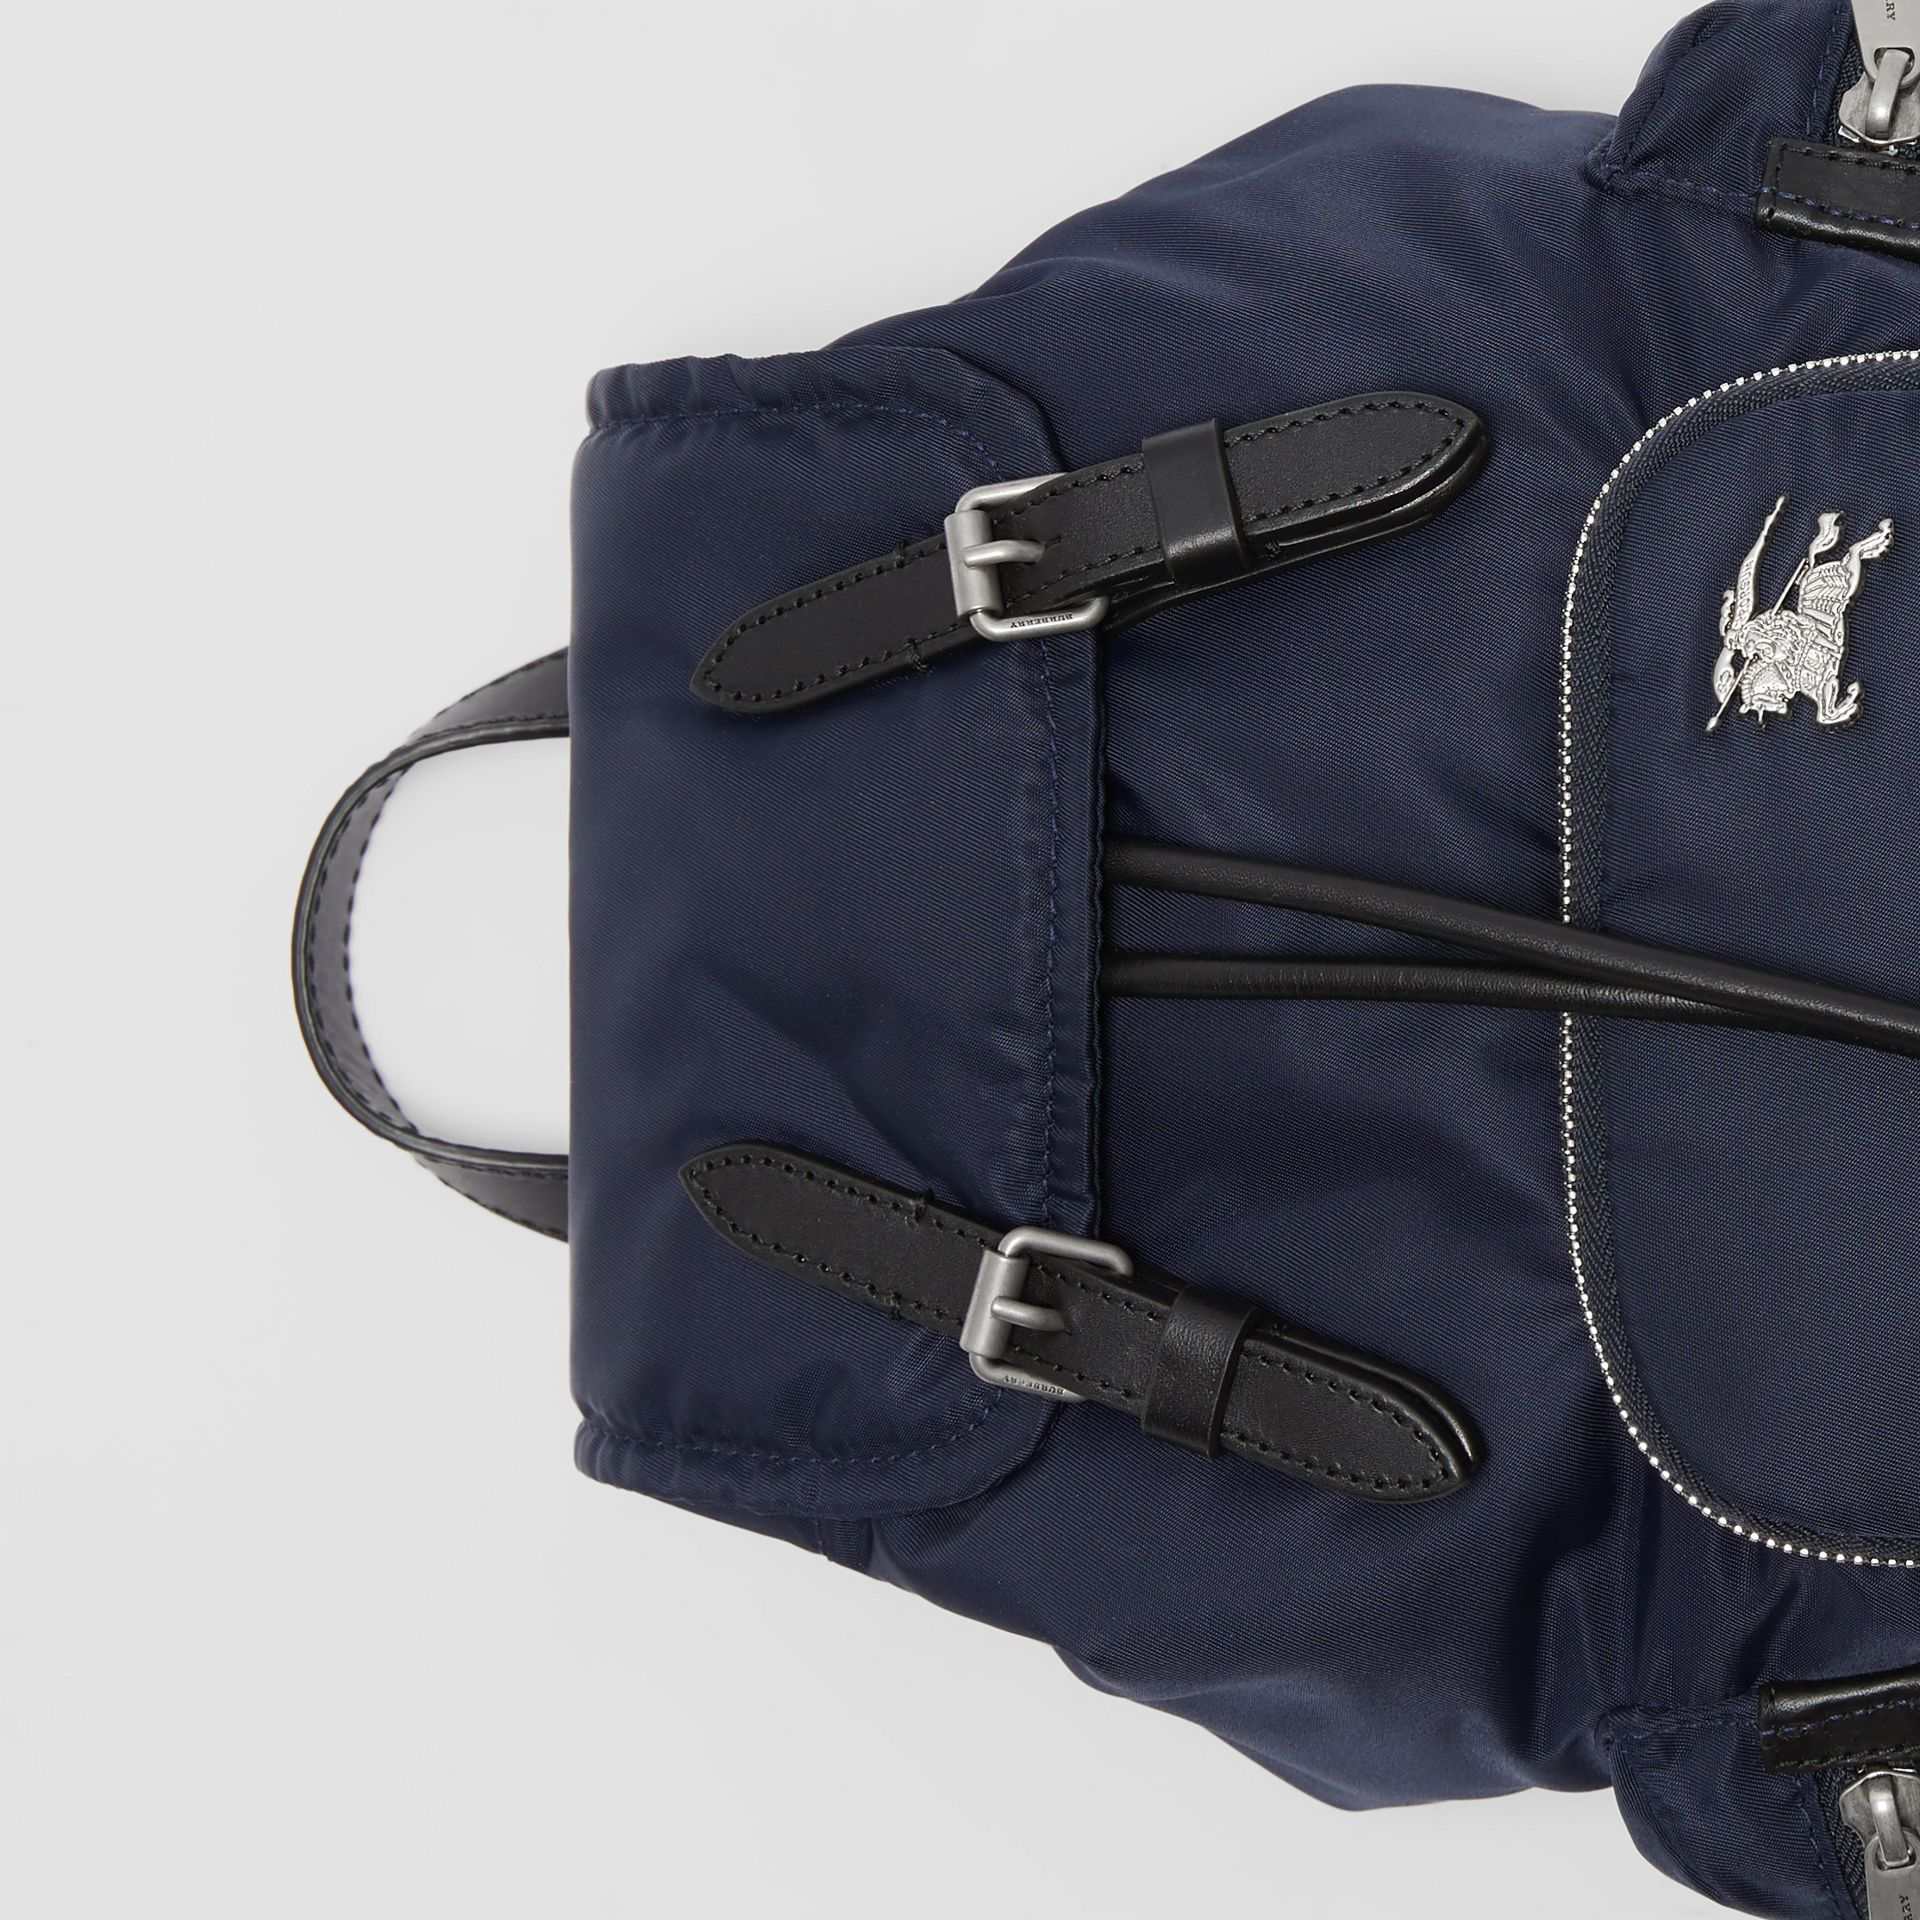 The Small Crossbody Rucksack in Puffer Nylon in Ink Blue - Women | Burberry Canada - gallery image 1